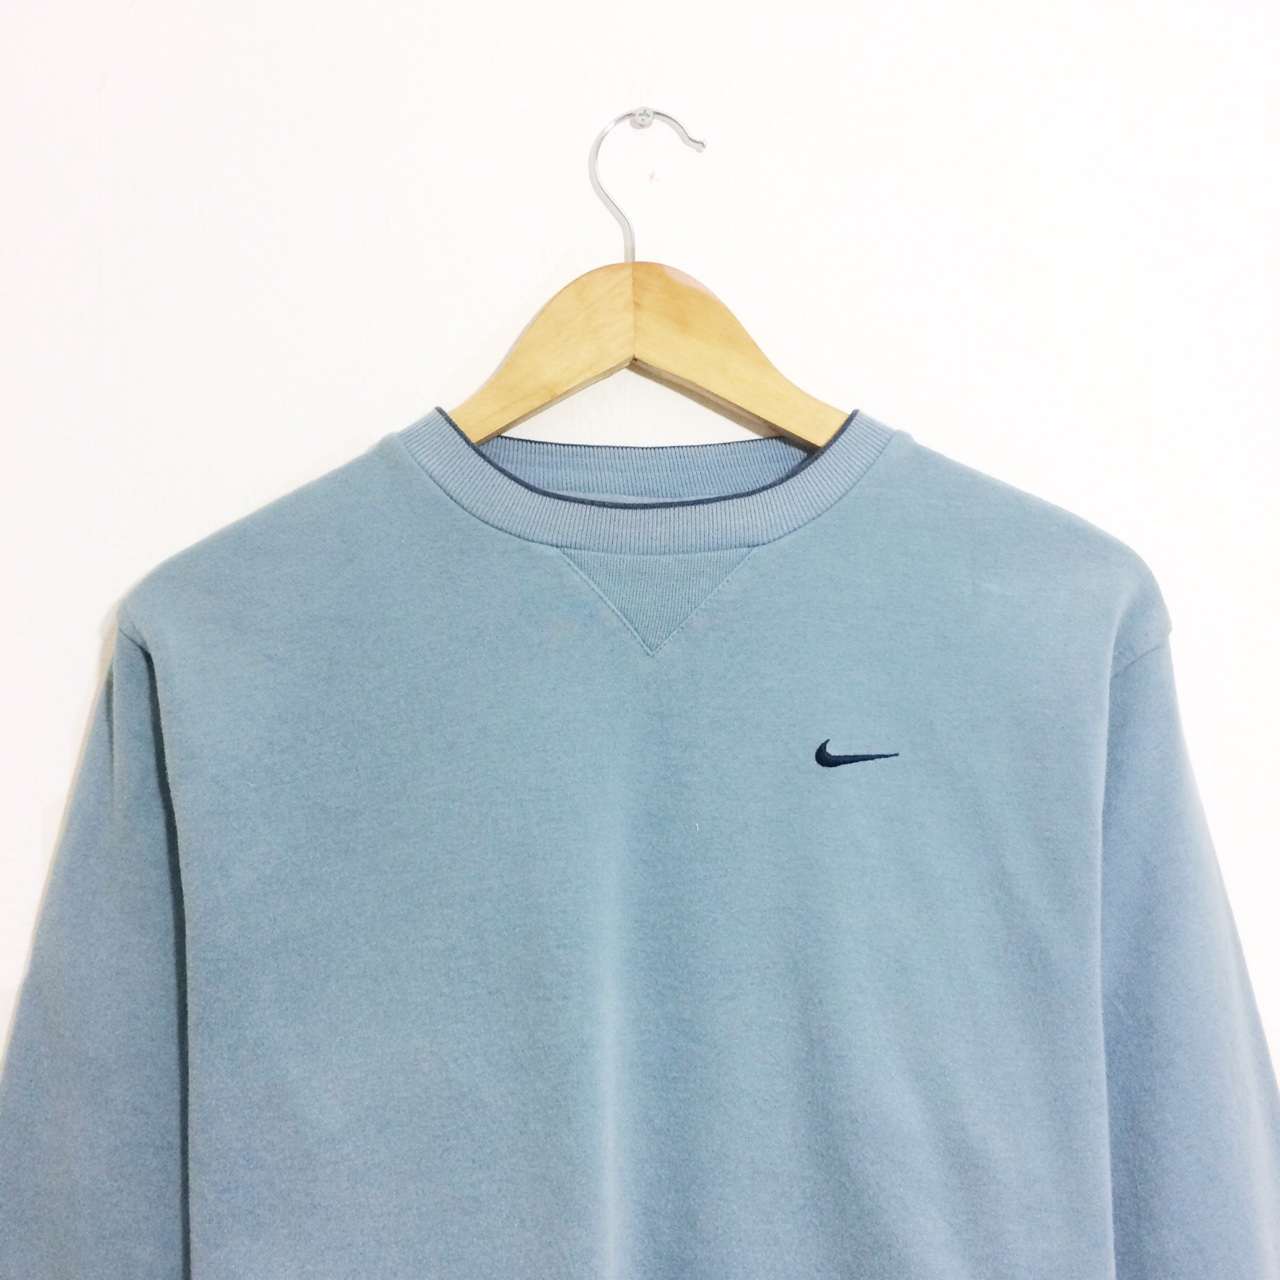 Retro 90's Nike sweater in baby blue with small logo Depop